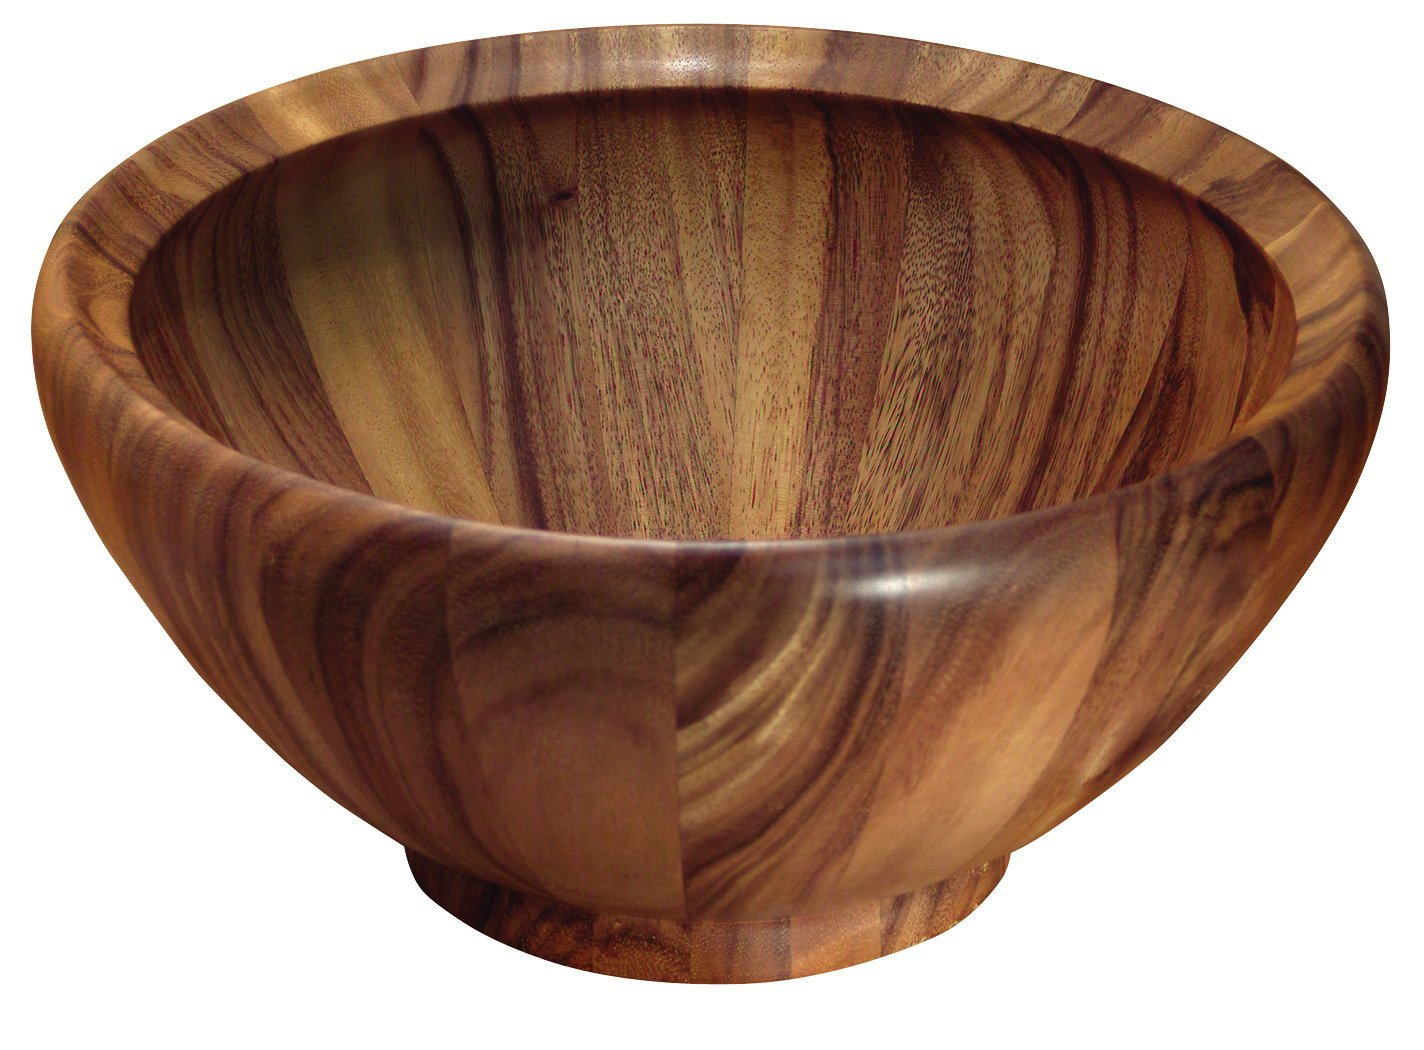 Extra Large (16x8 inch) Acacia Wood Salad Bowl